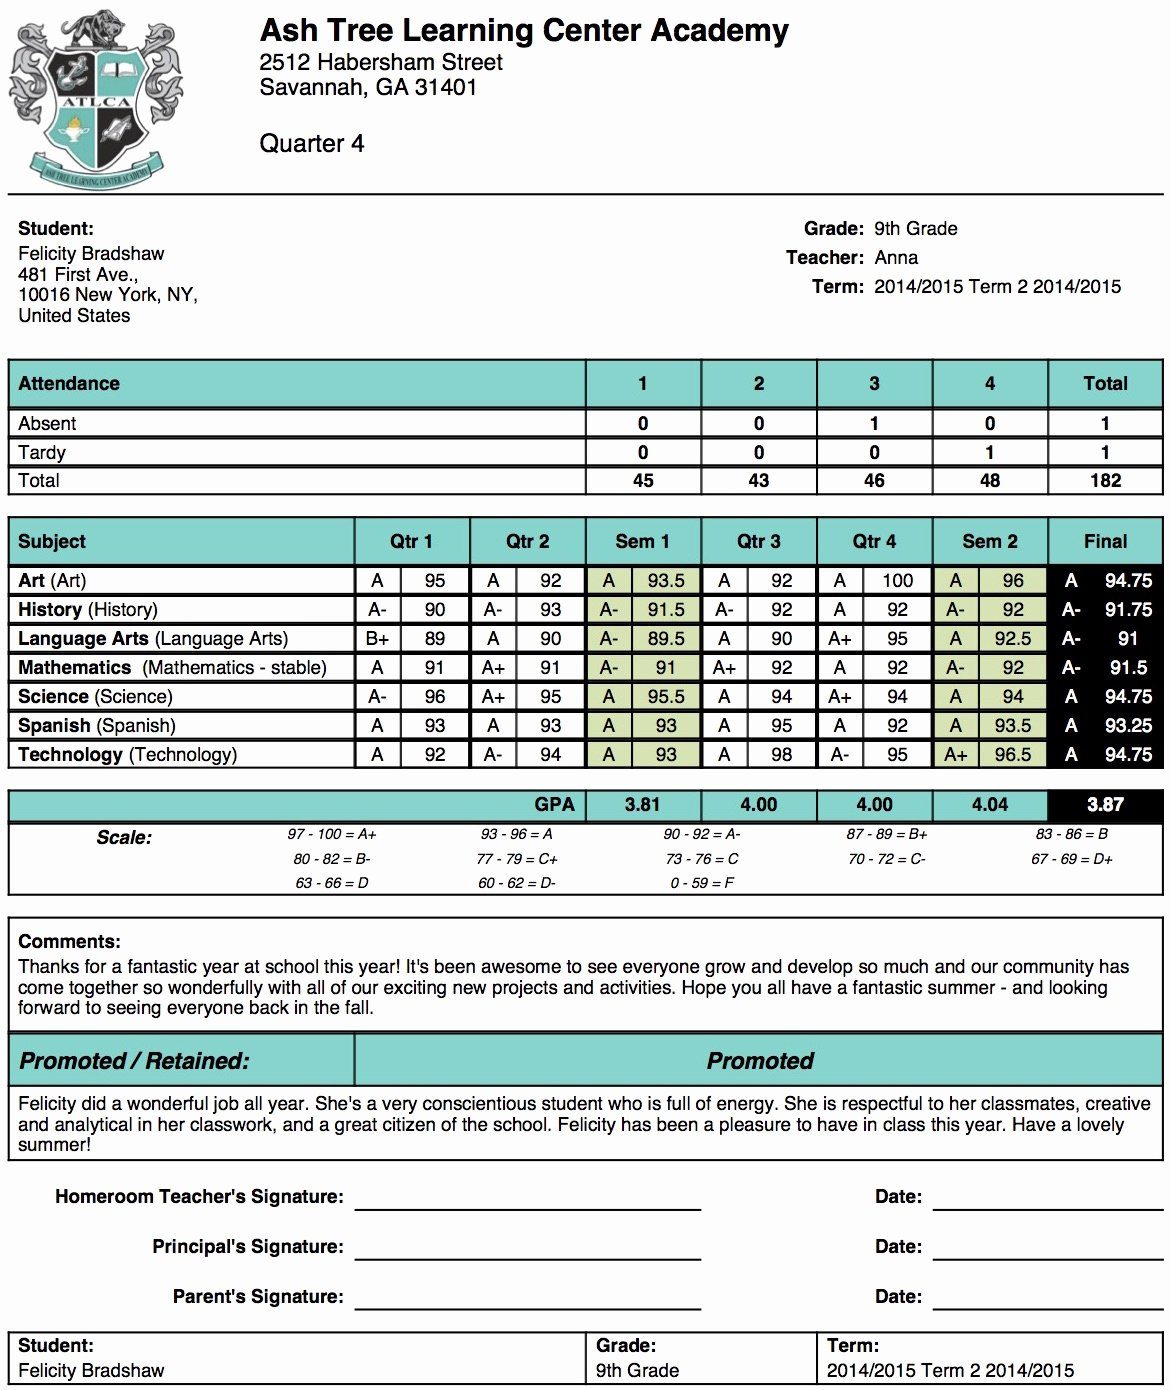 Free Homeschool Report Card Template Best Of ash Tree Learning Center Academy Report Card Template